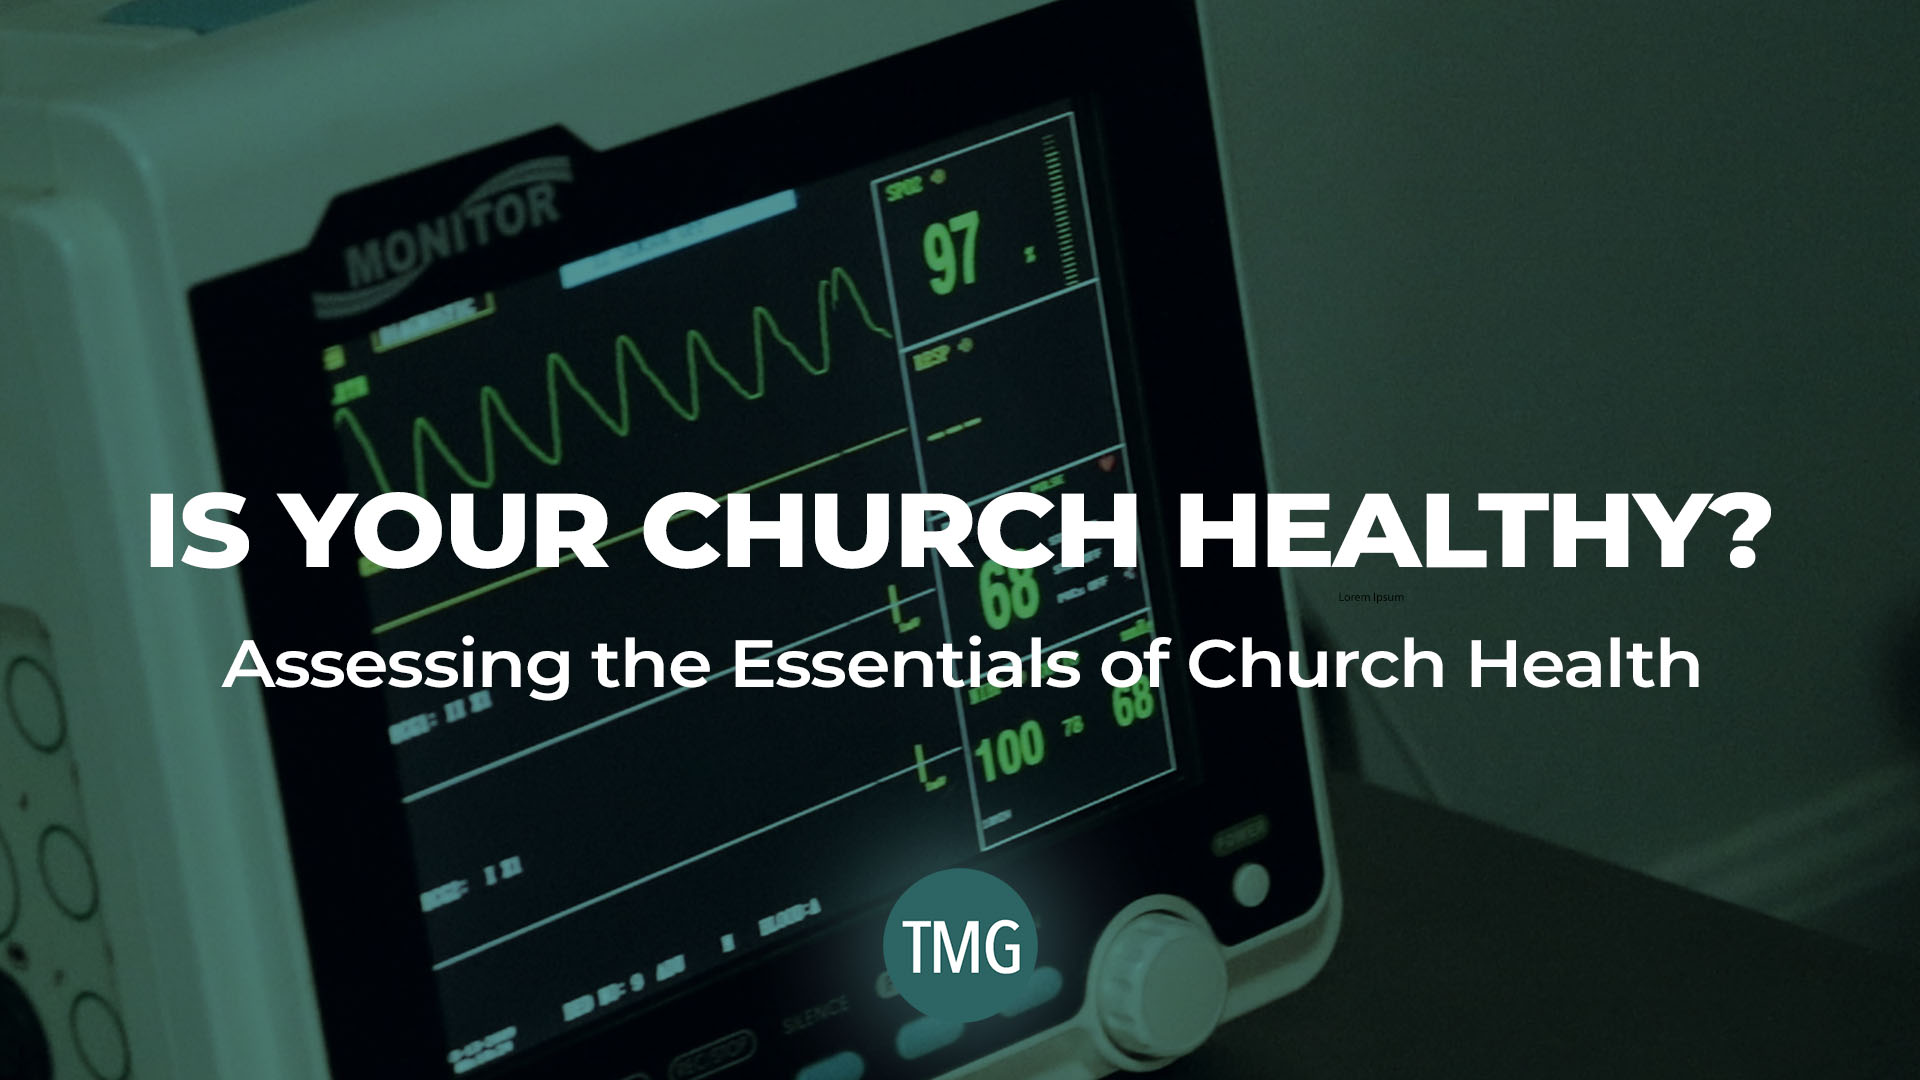 is-your-church-healthy-header-image